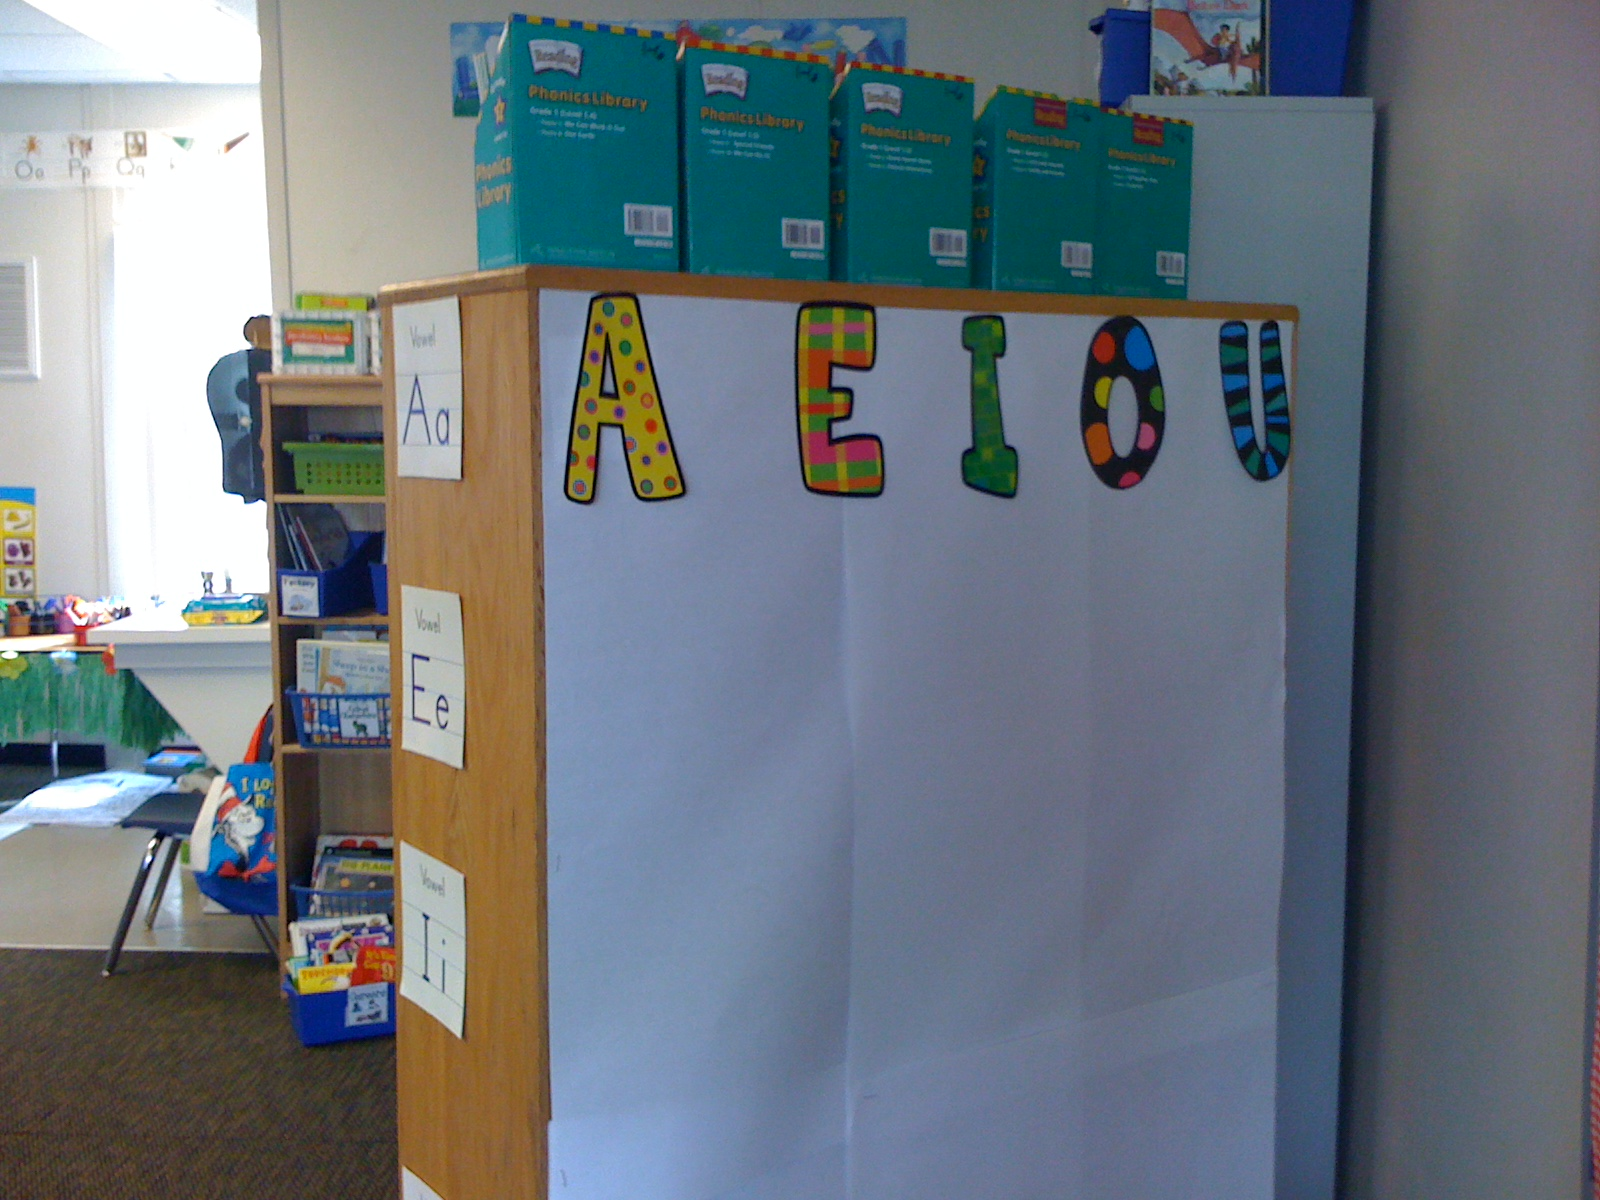 Accelerated Reader Bulletin Boards http://www.nbu.bg/cogs/personal/radu/pas/accelerated-reader-bulletin-board-ideas&page=6